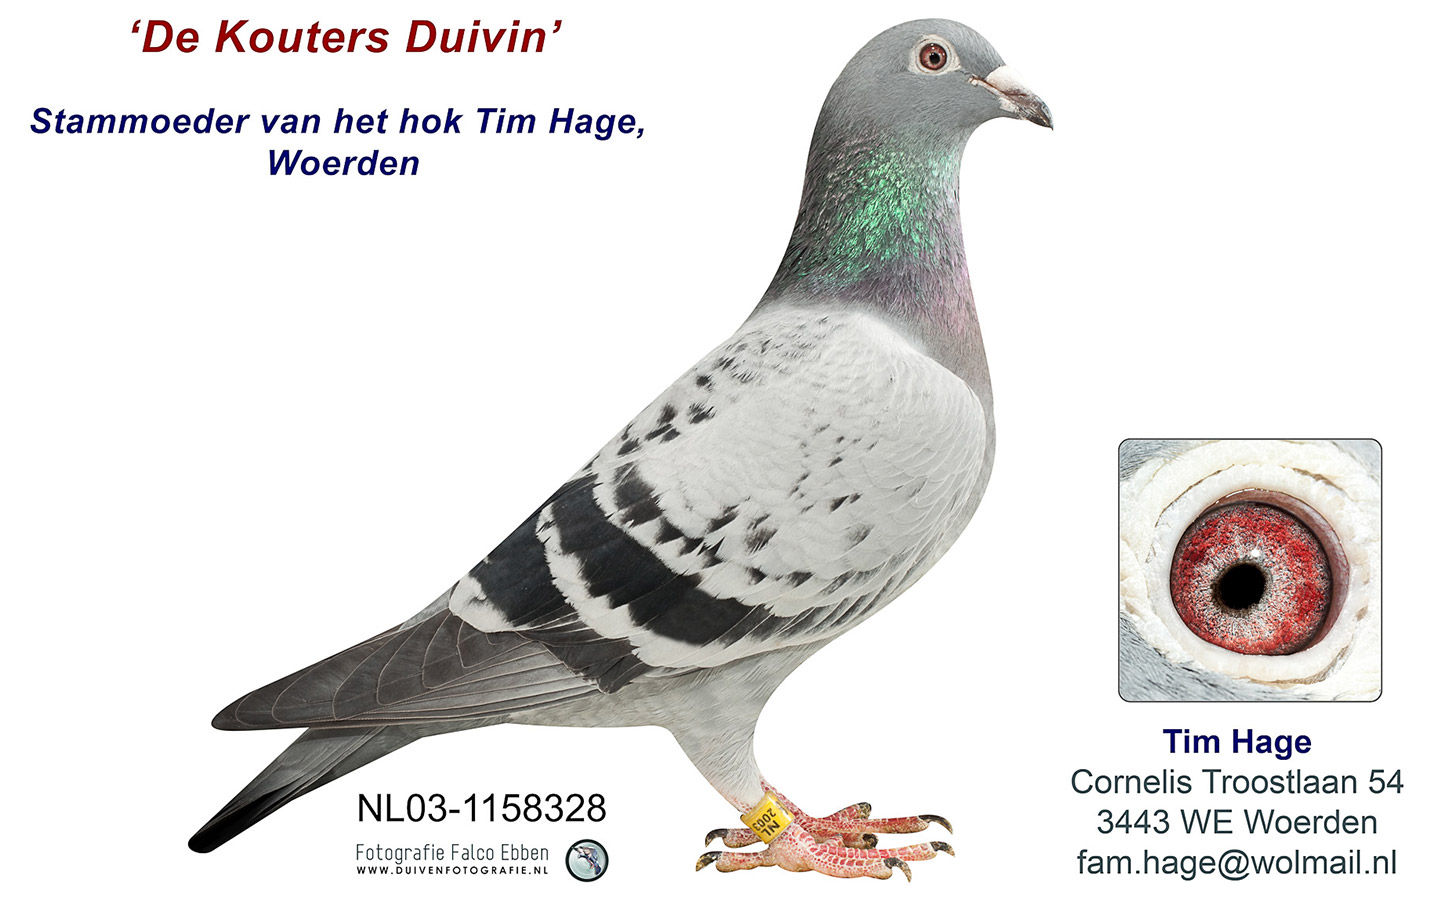 Topkwekers De Kouters Duivin